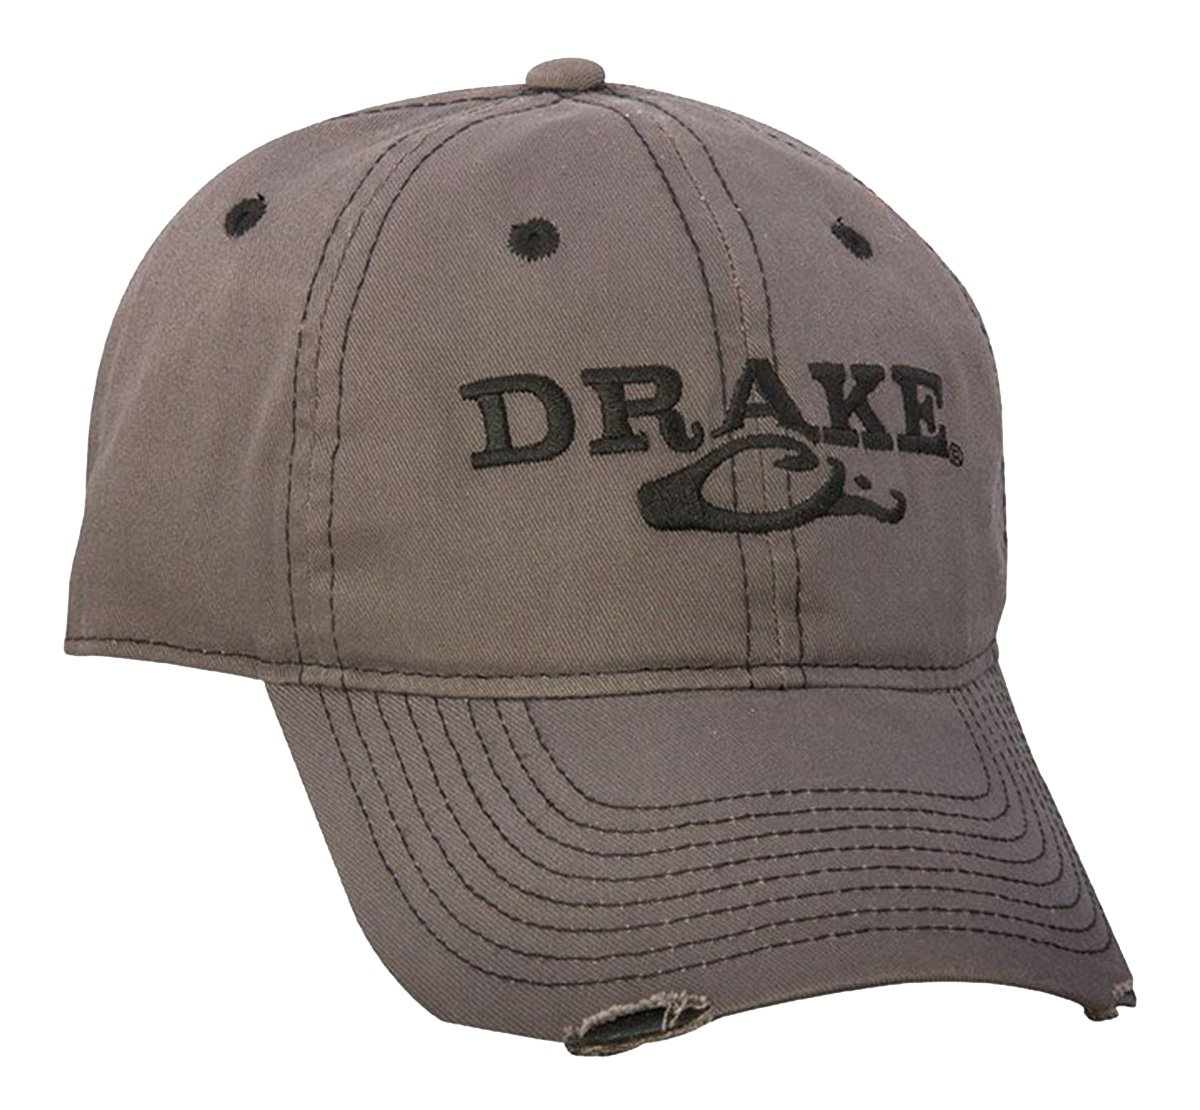 d21af4d365d Amazon.com  Drake Waterfowl Solid Distressed Cap - Gray  Sports   Outdoors